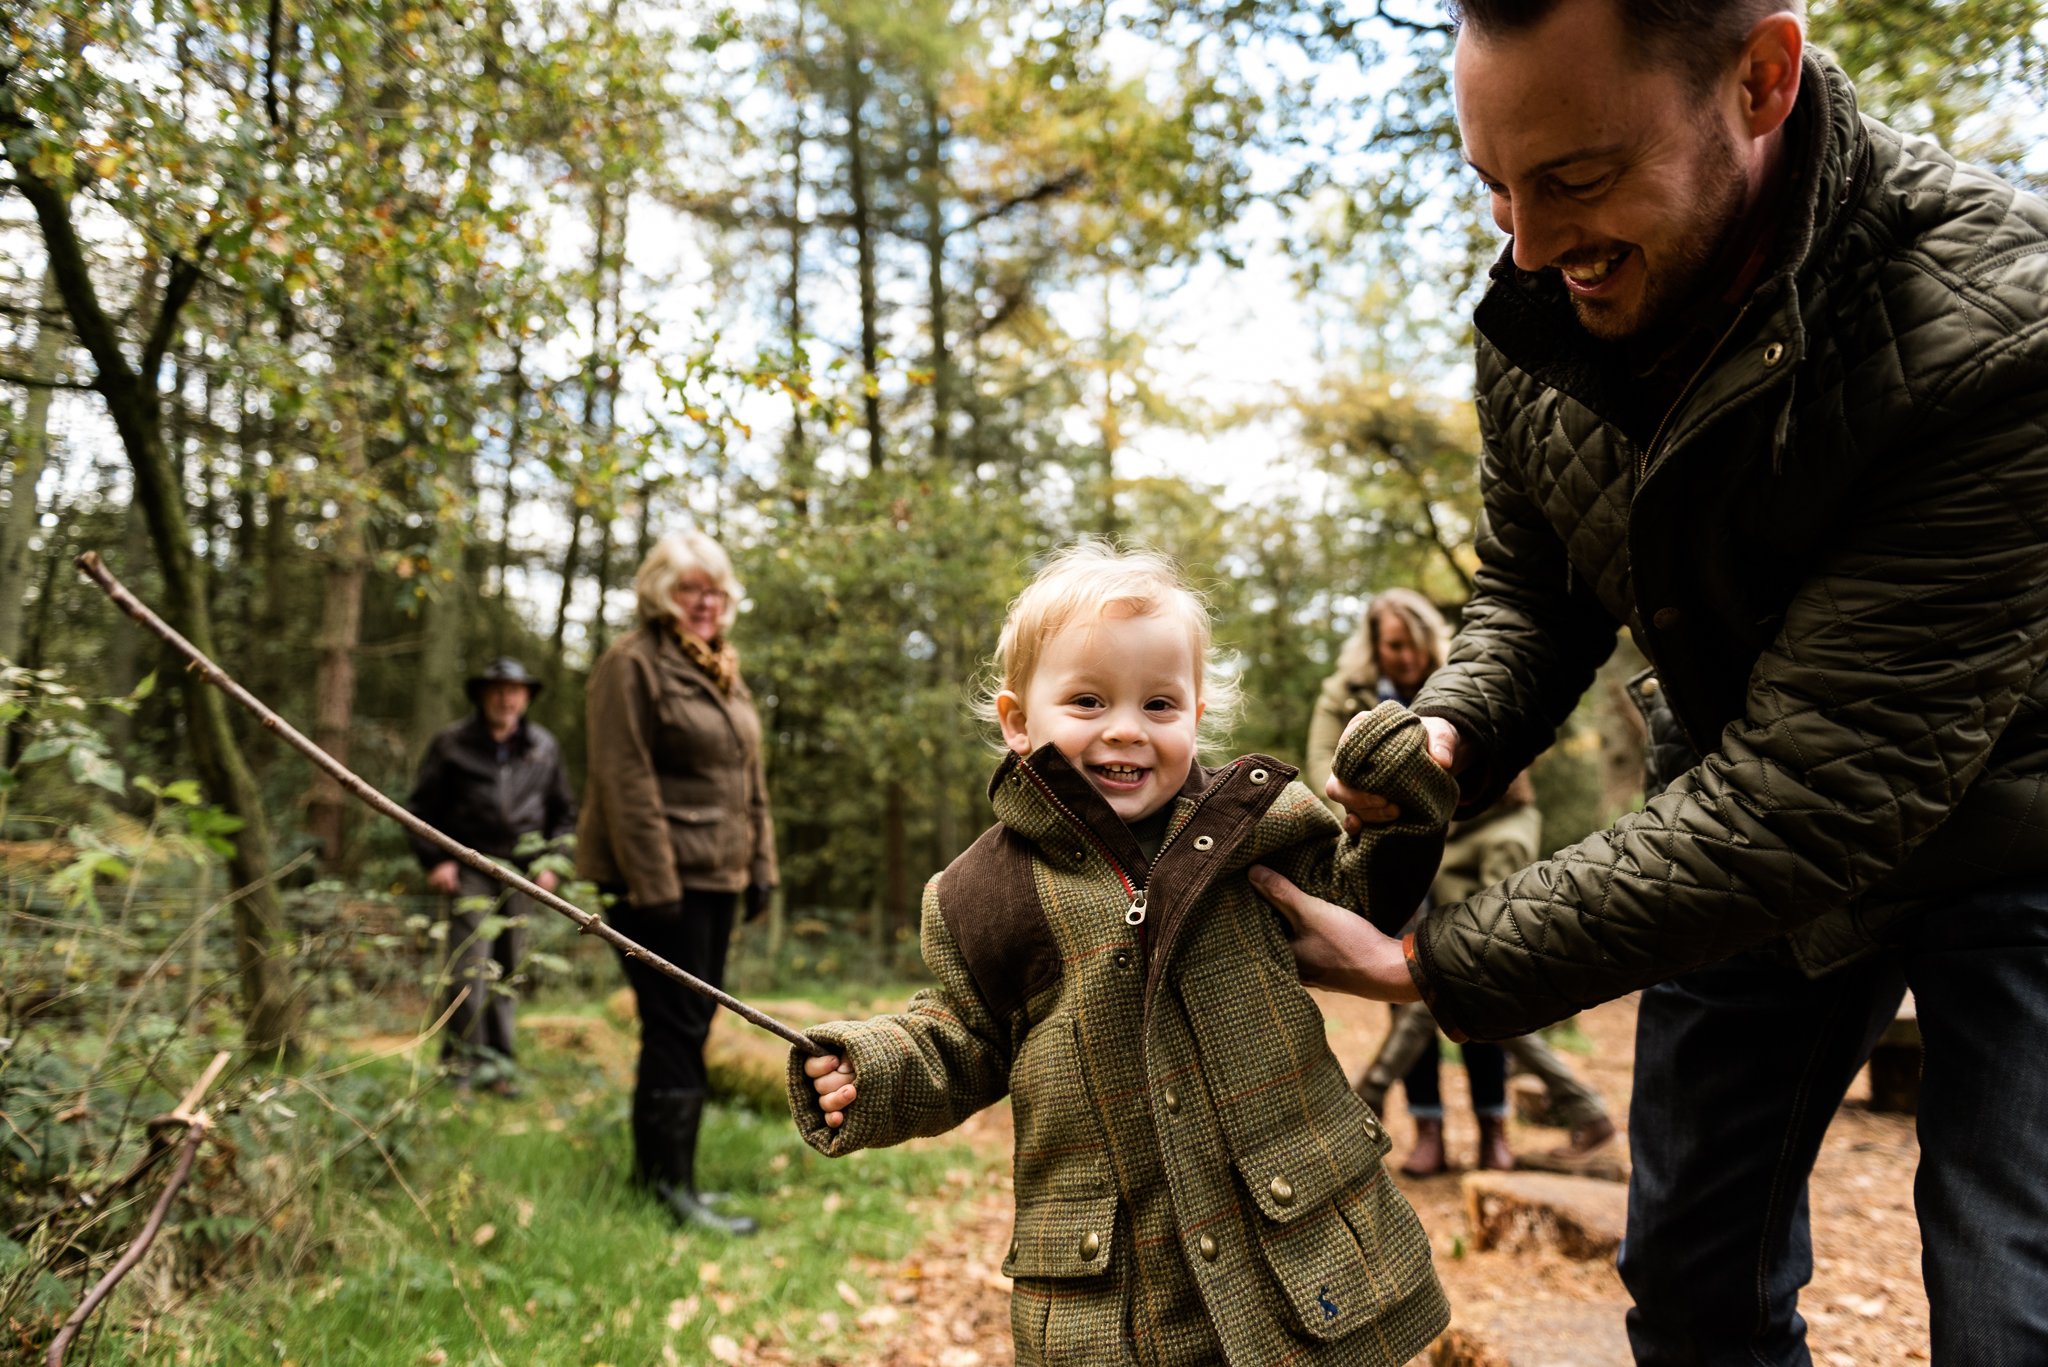 Autumn Documentary Lifestyle Family Photography at Clent Hills, Worcestershire Country Park countryside outdoors nature - Jenny Harper-3.jpg